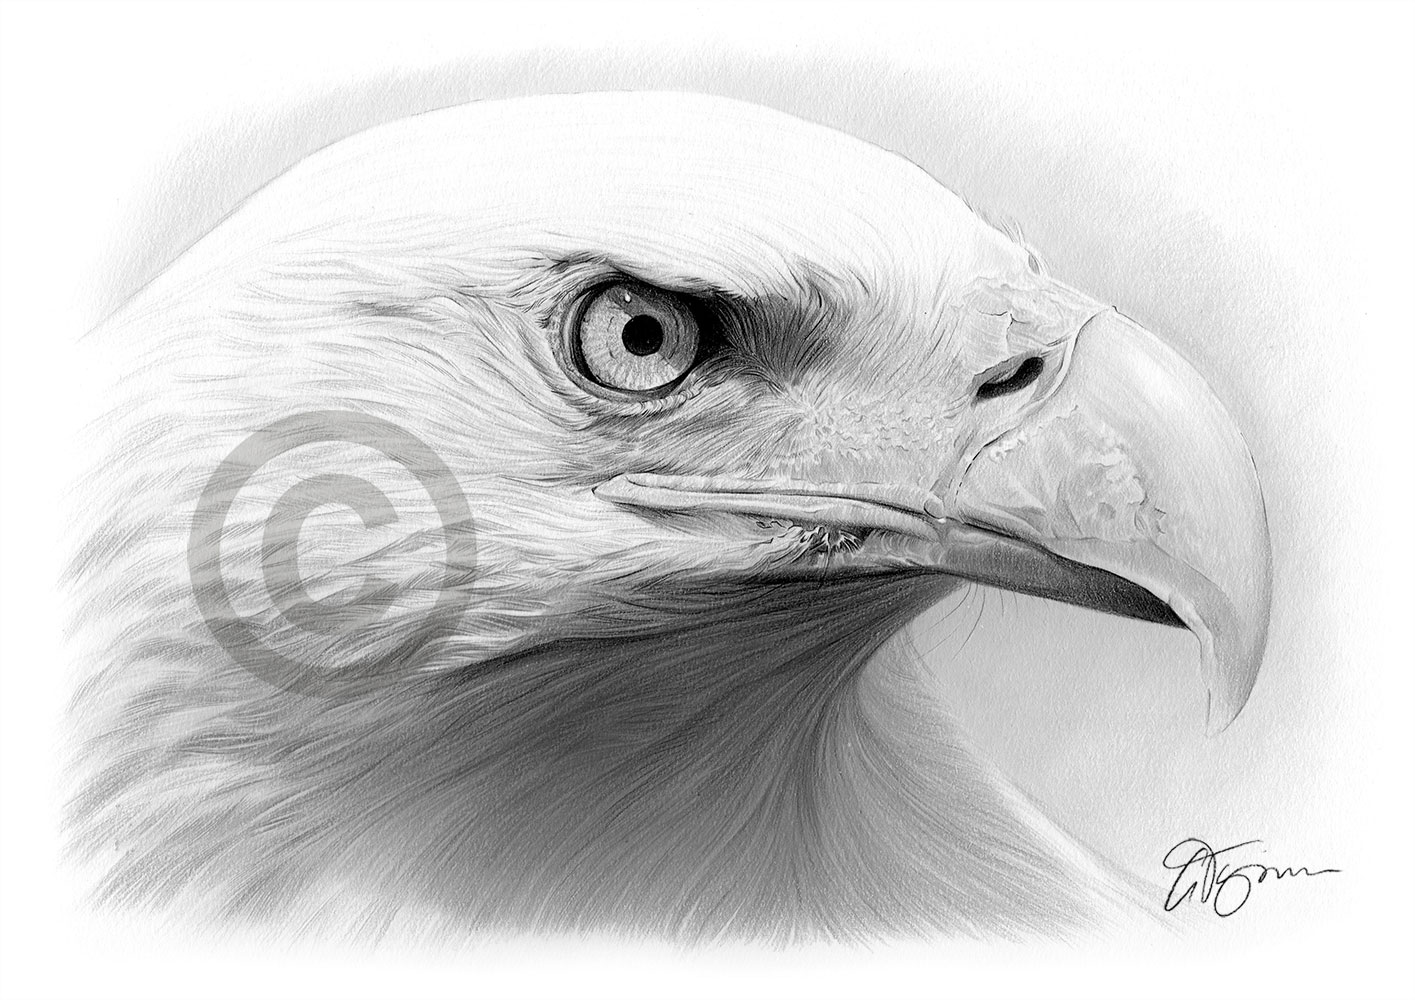 Details about bald eagle pencil drawing art print a4 a3 signed by uk artist bird artwork